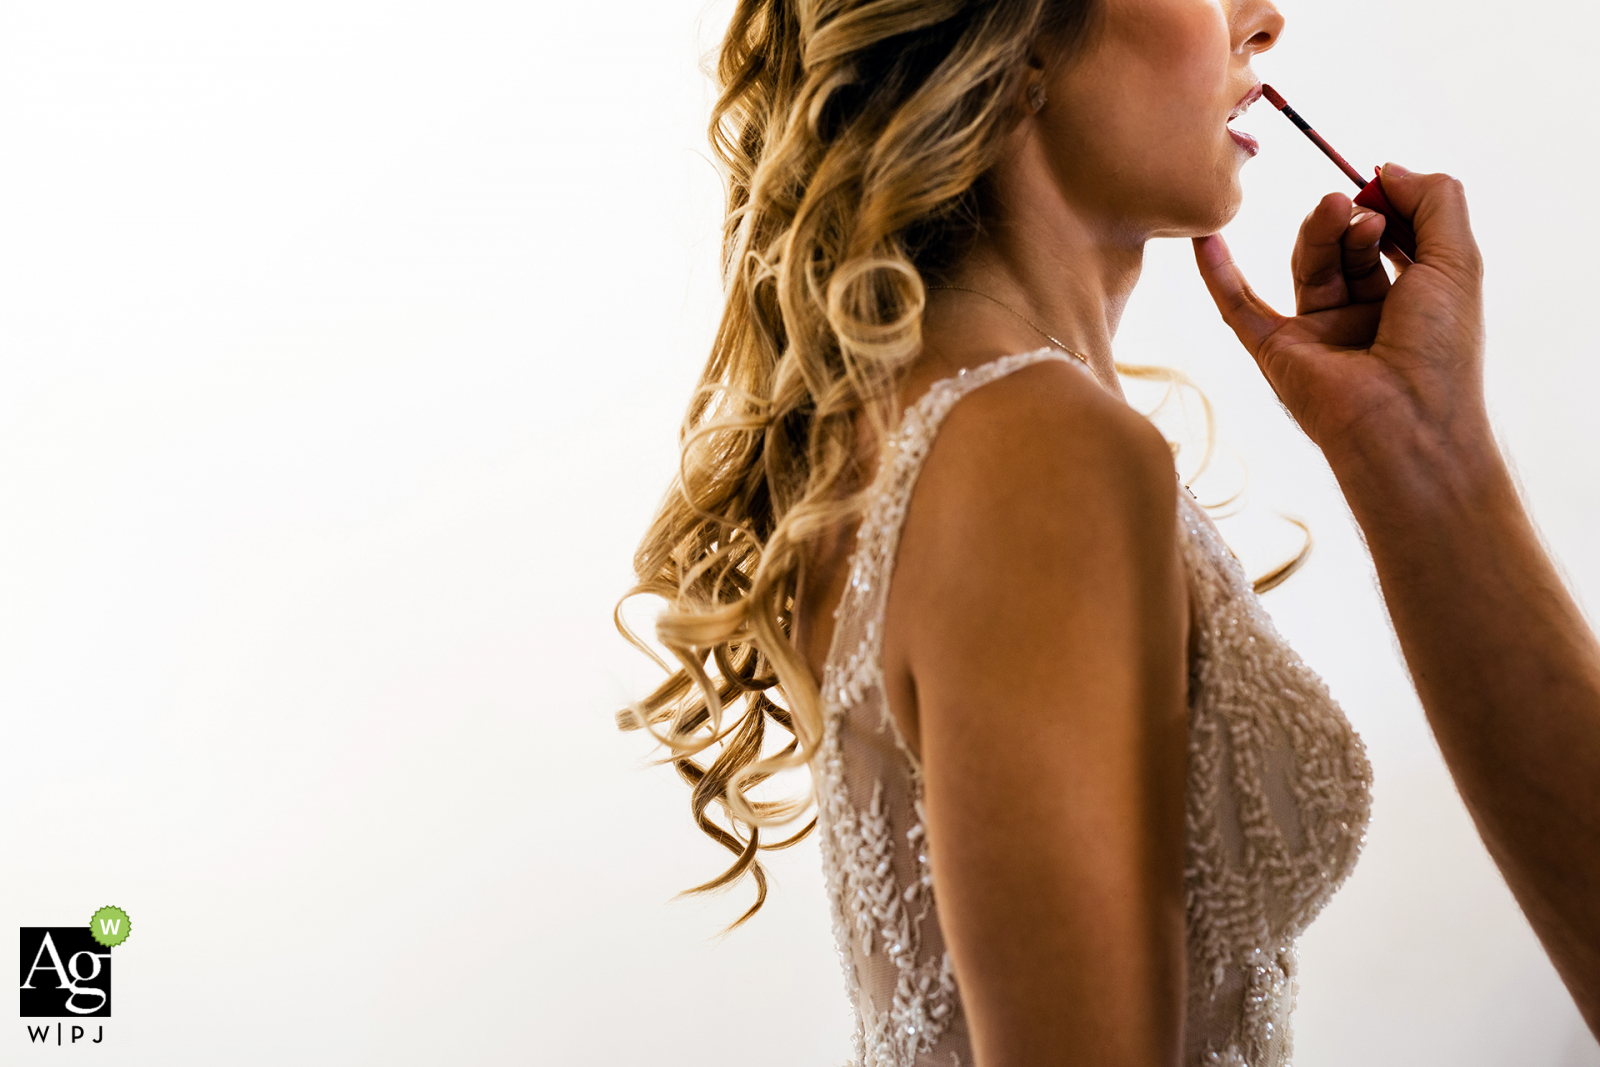 Istanbul fine art wedding detail photography picture created as bride's getting ready against all white background with her lipstick